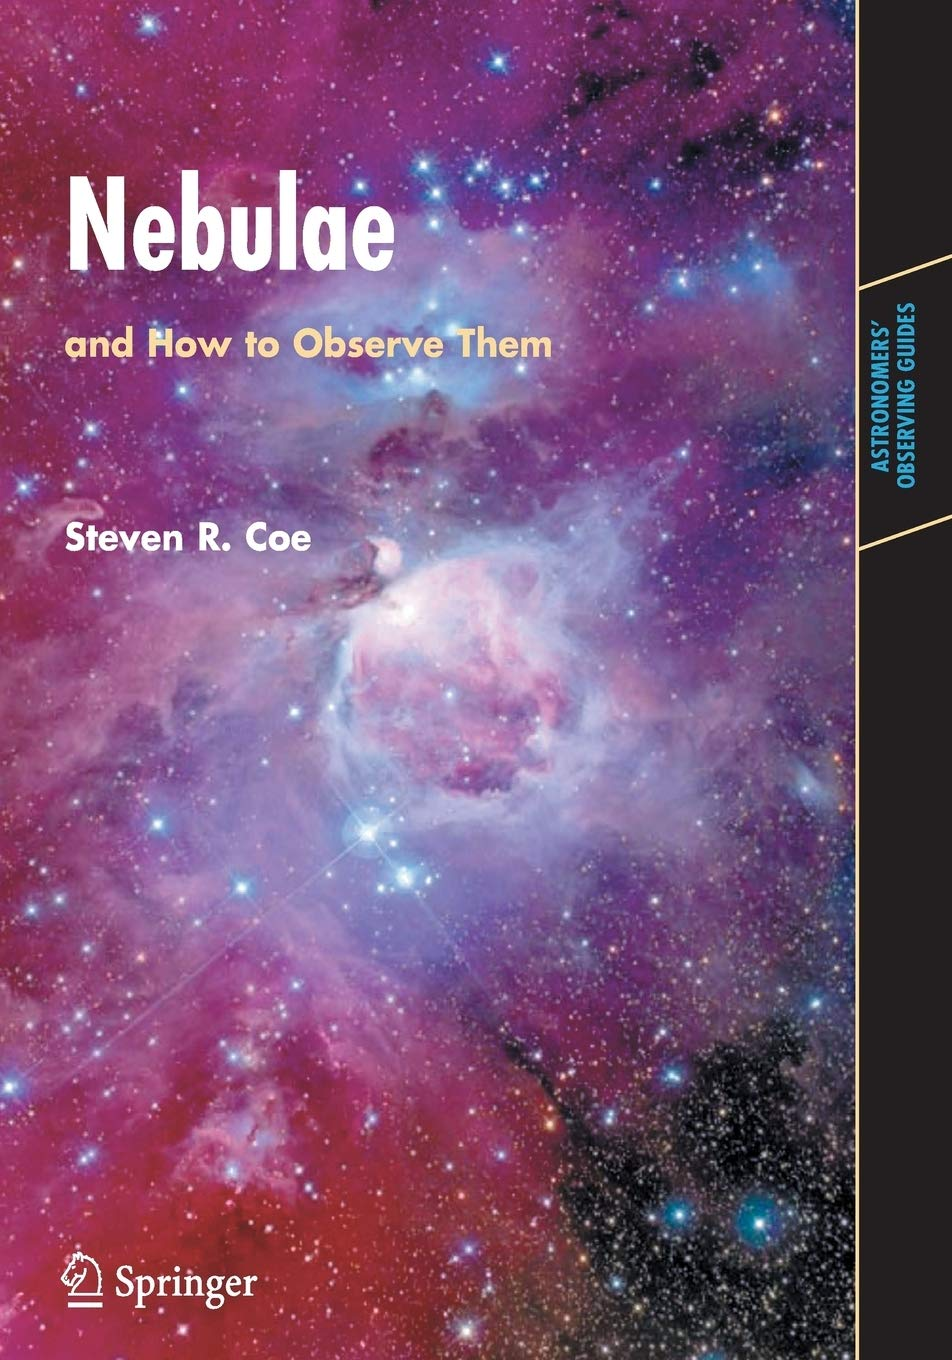 book cover for nebulae and how to observe them by steven r coe